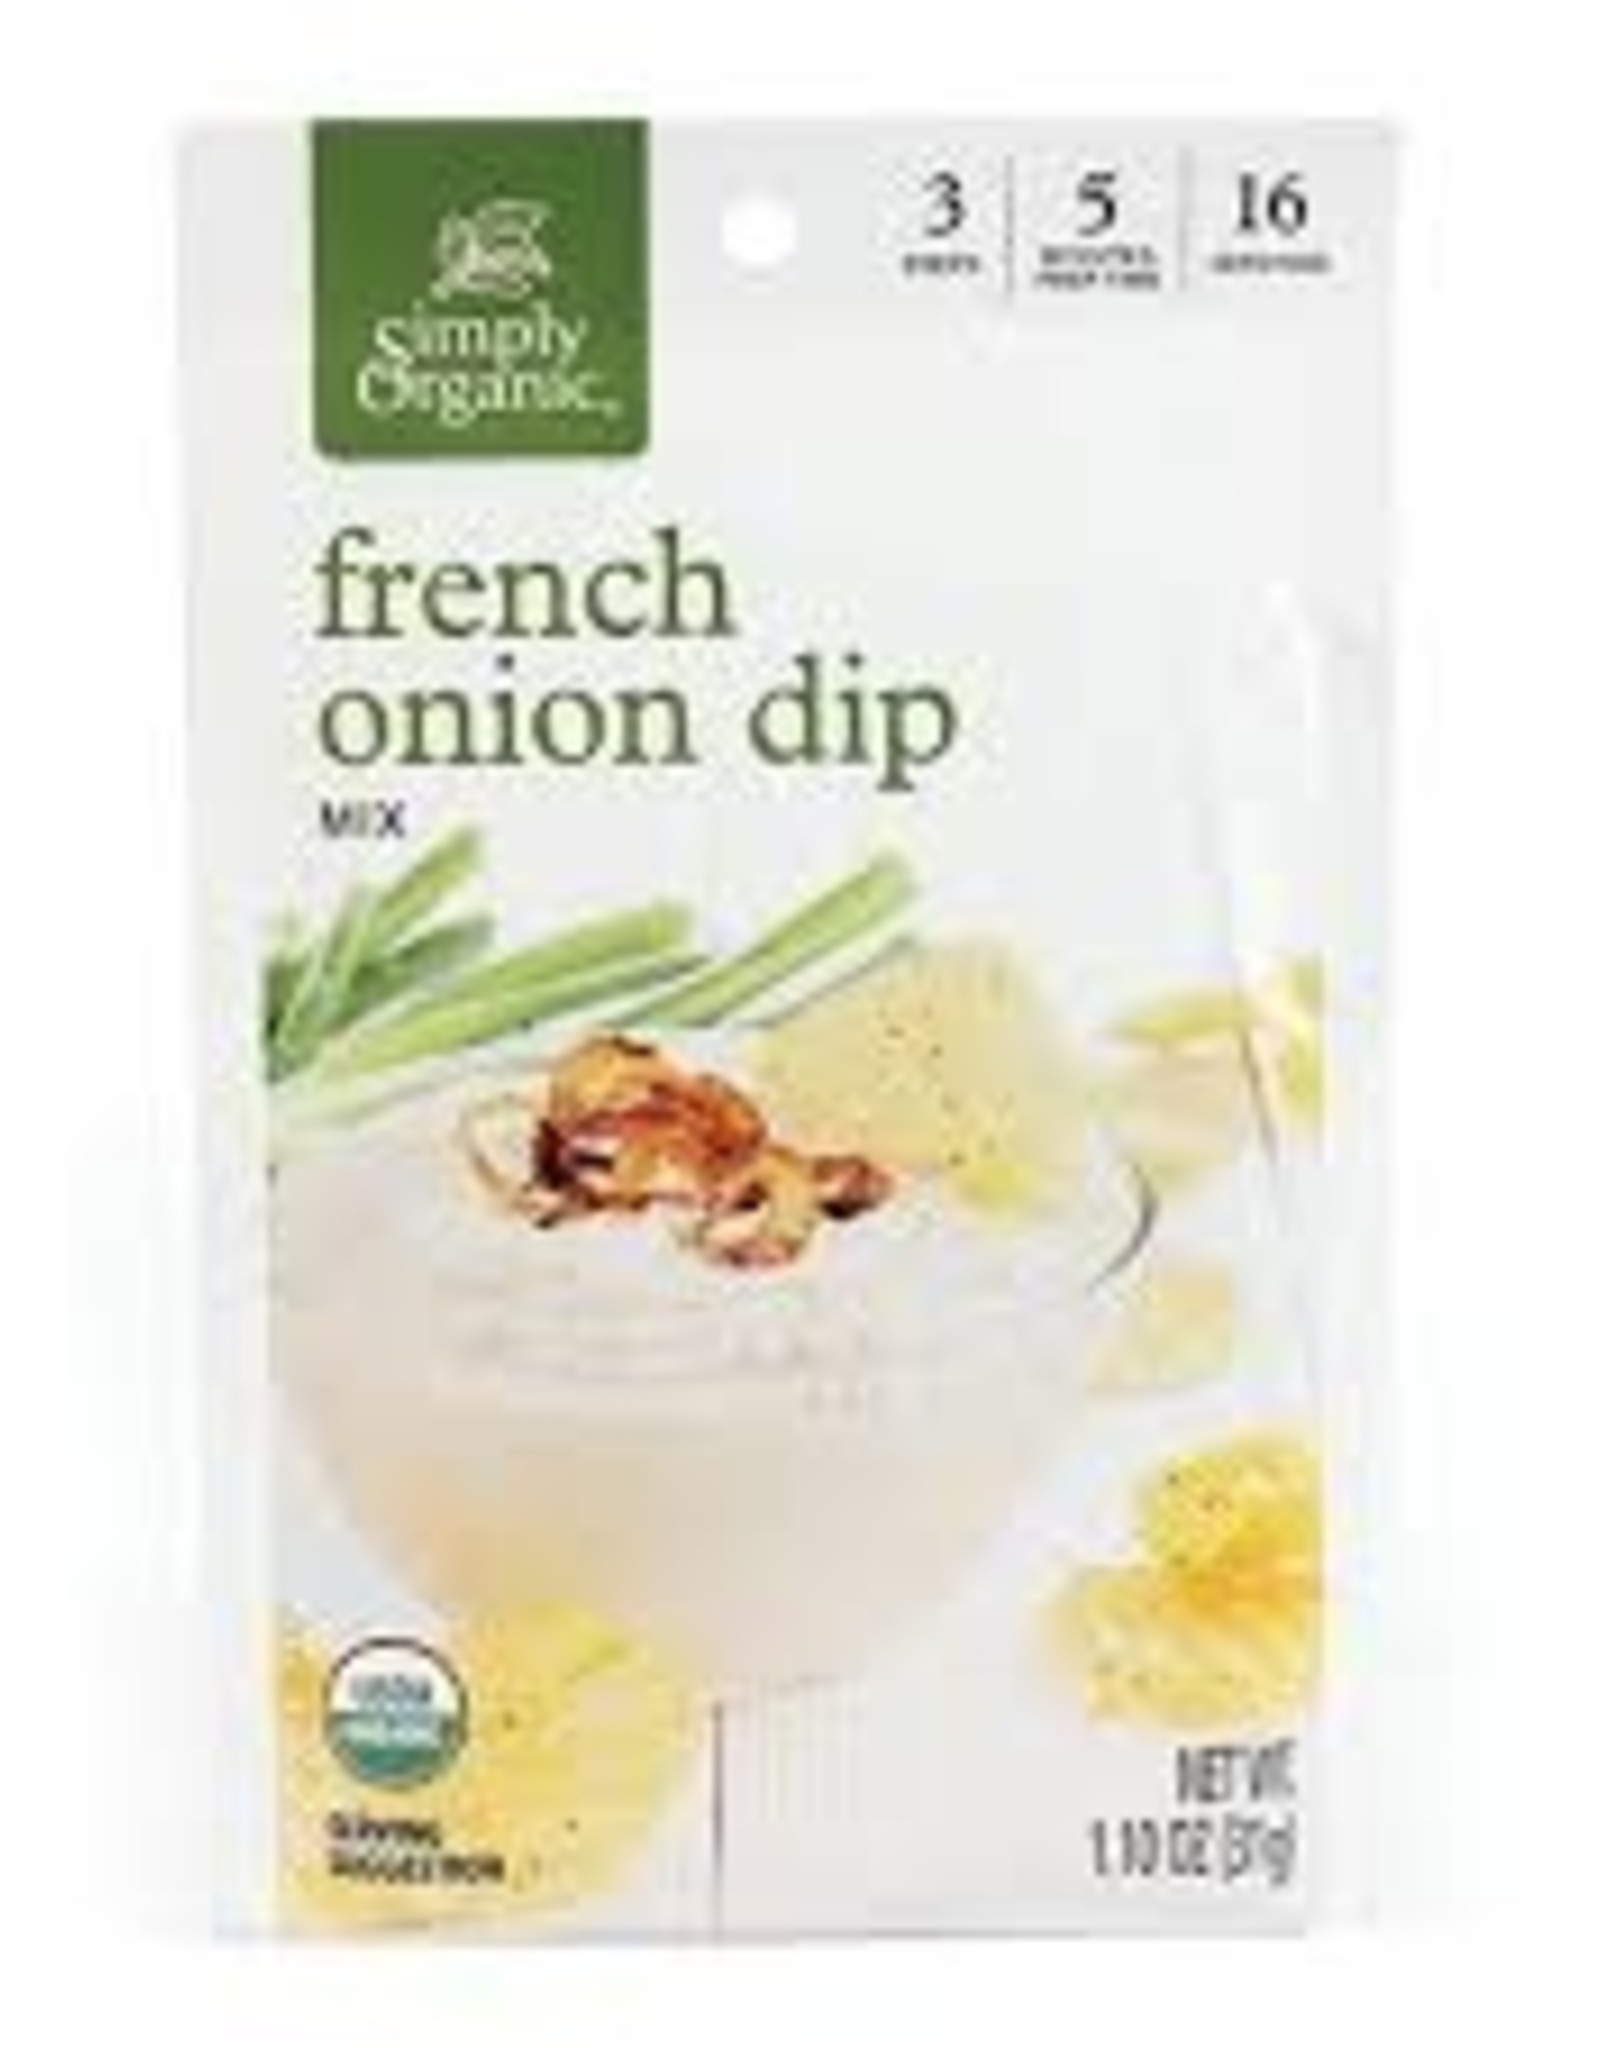 Simlpy Organic Simply Organic - Seasoning Mix, French Onion Dip